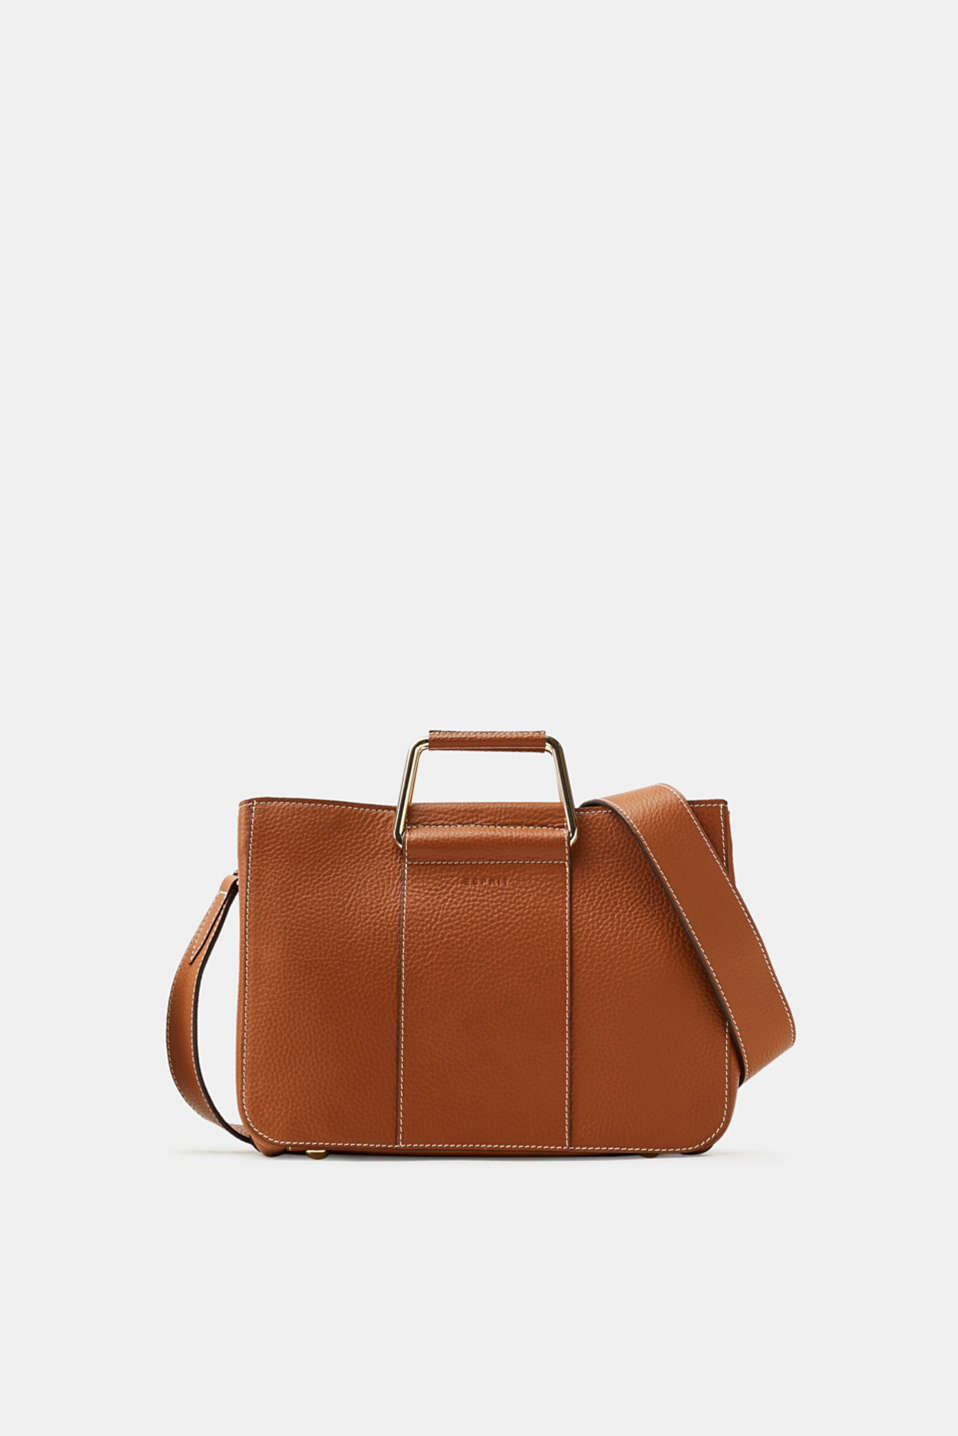 An elegant, eye-catching piece with it bag potential: Sophisticated city bag made of cowhide leather.